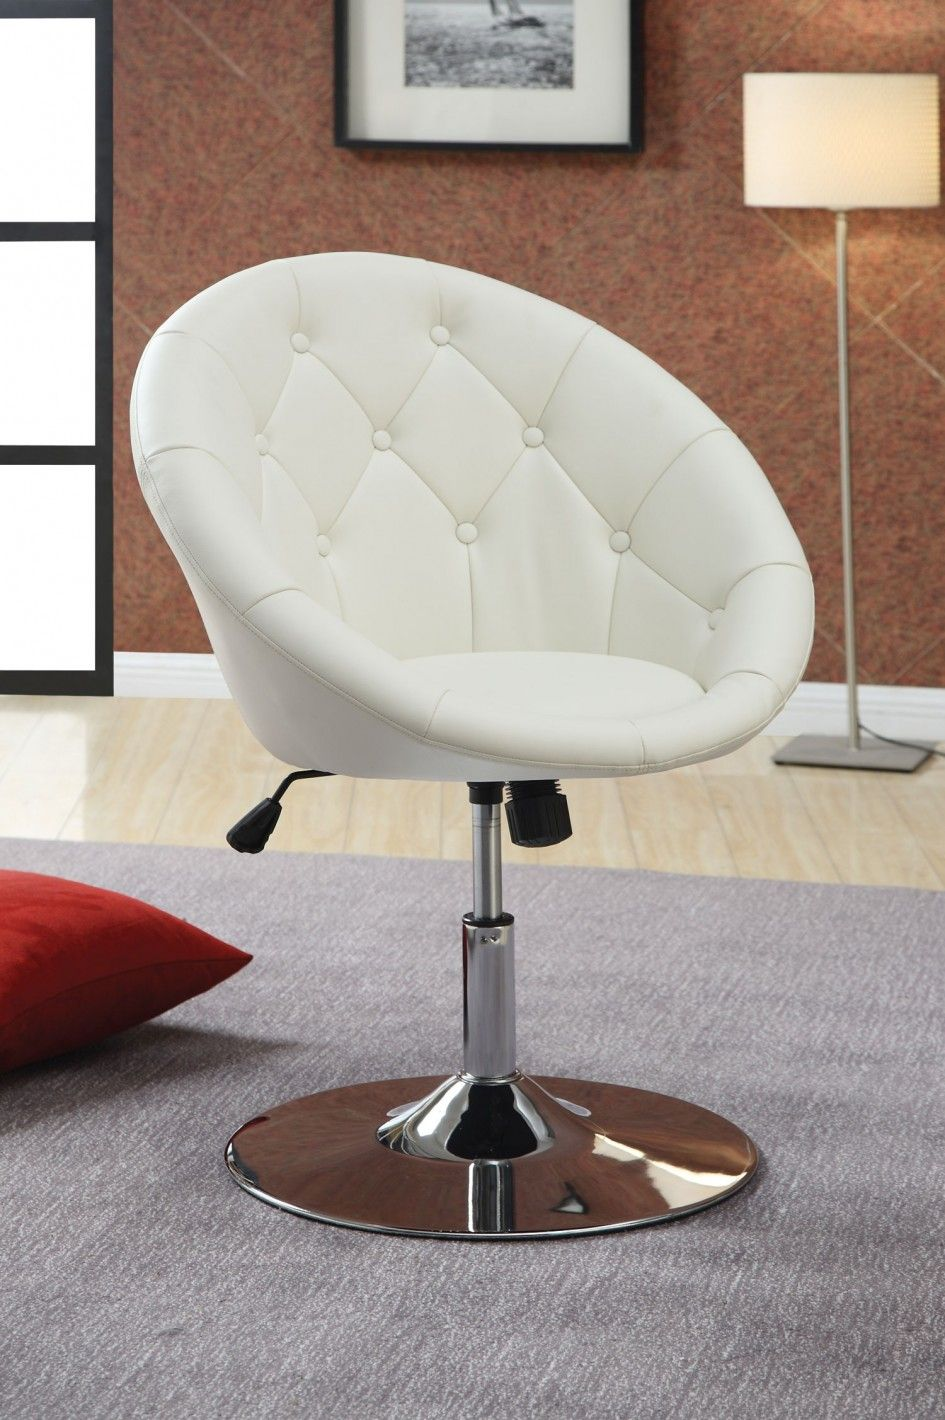 white leather swivel desk chair reclining patio modern uphosltered with tufted back and chrome finish round metal base as well executive office chairs comfortable